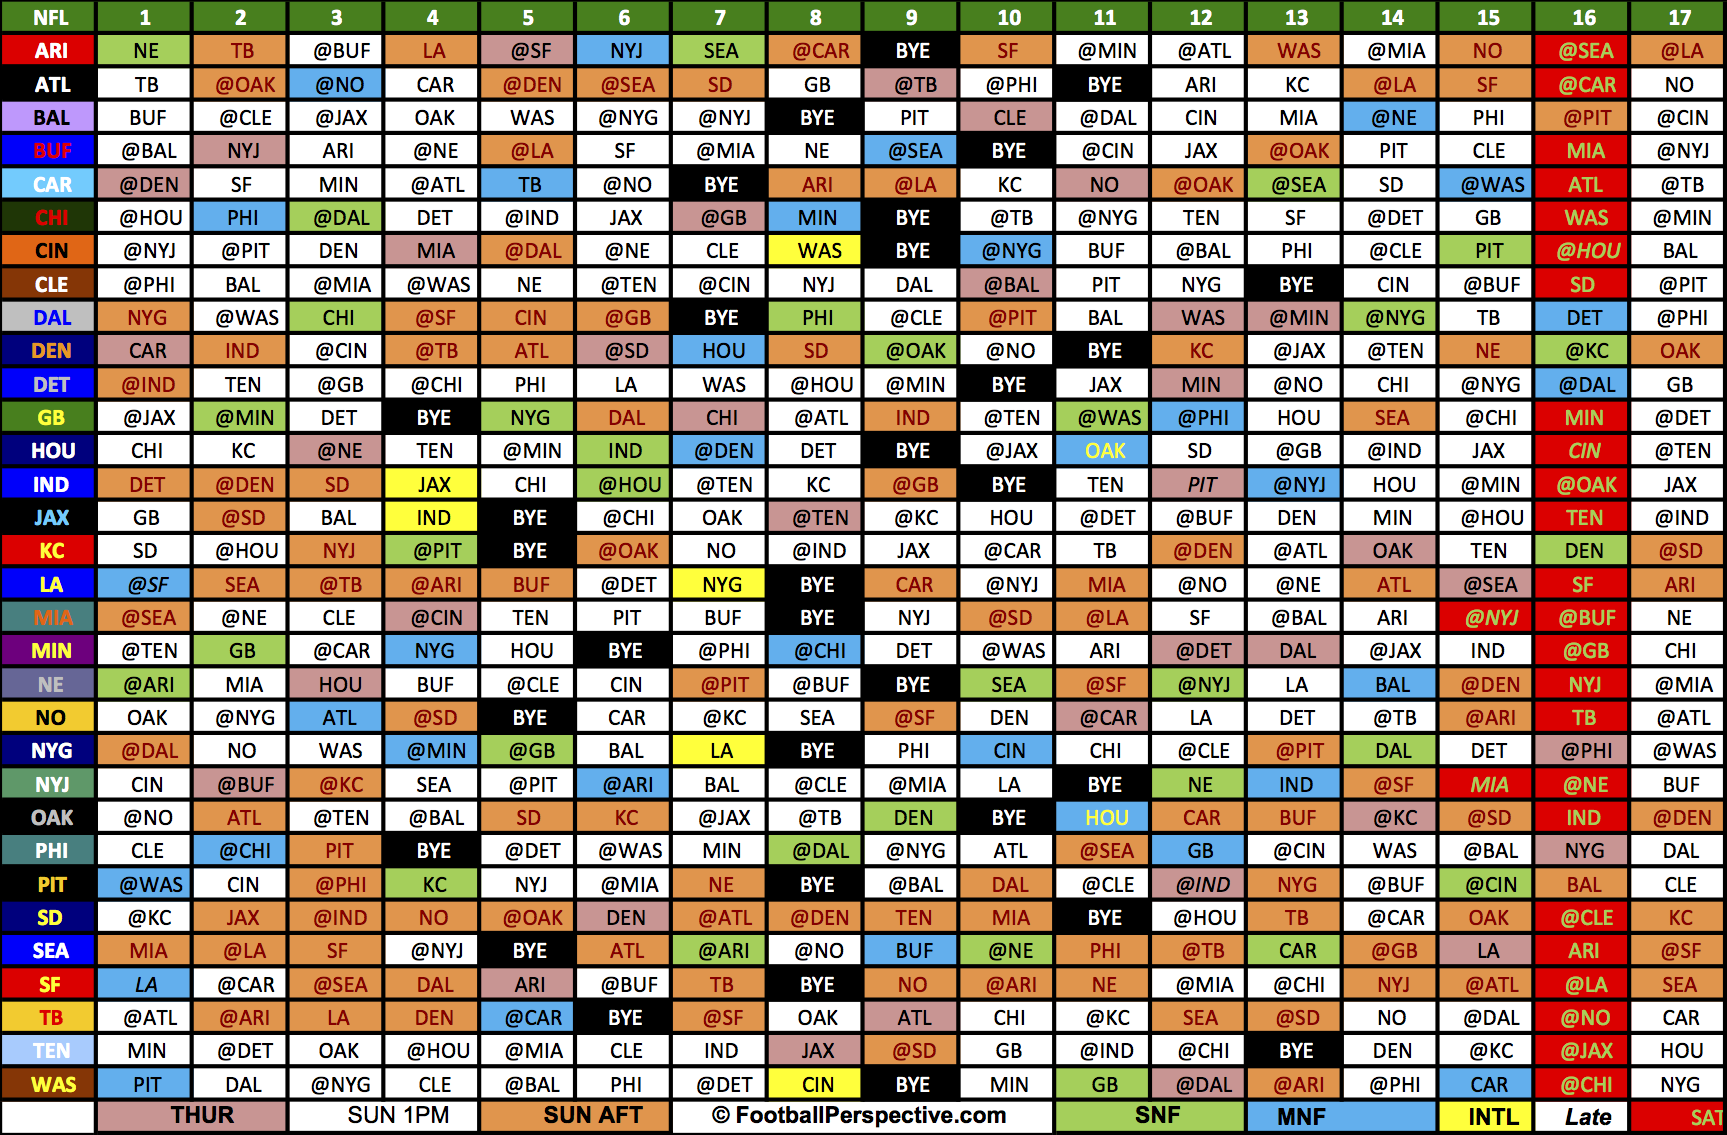 picture about Printable Nfl Schedule Grid called The 2016 NFL Routine